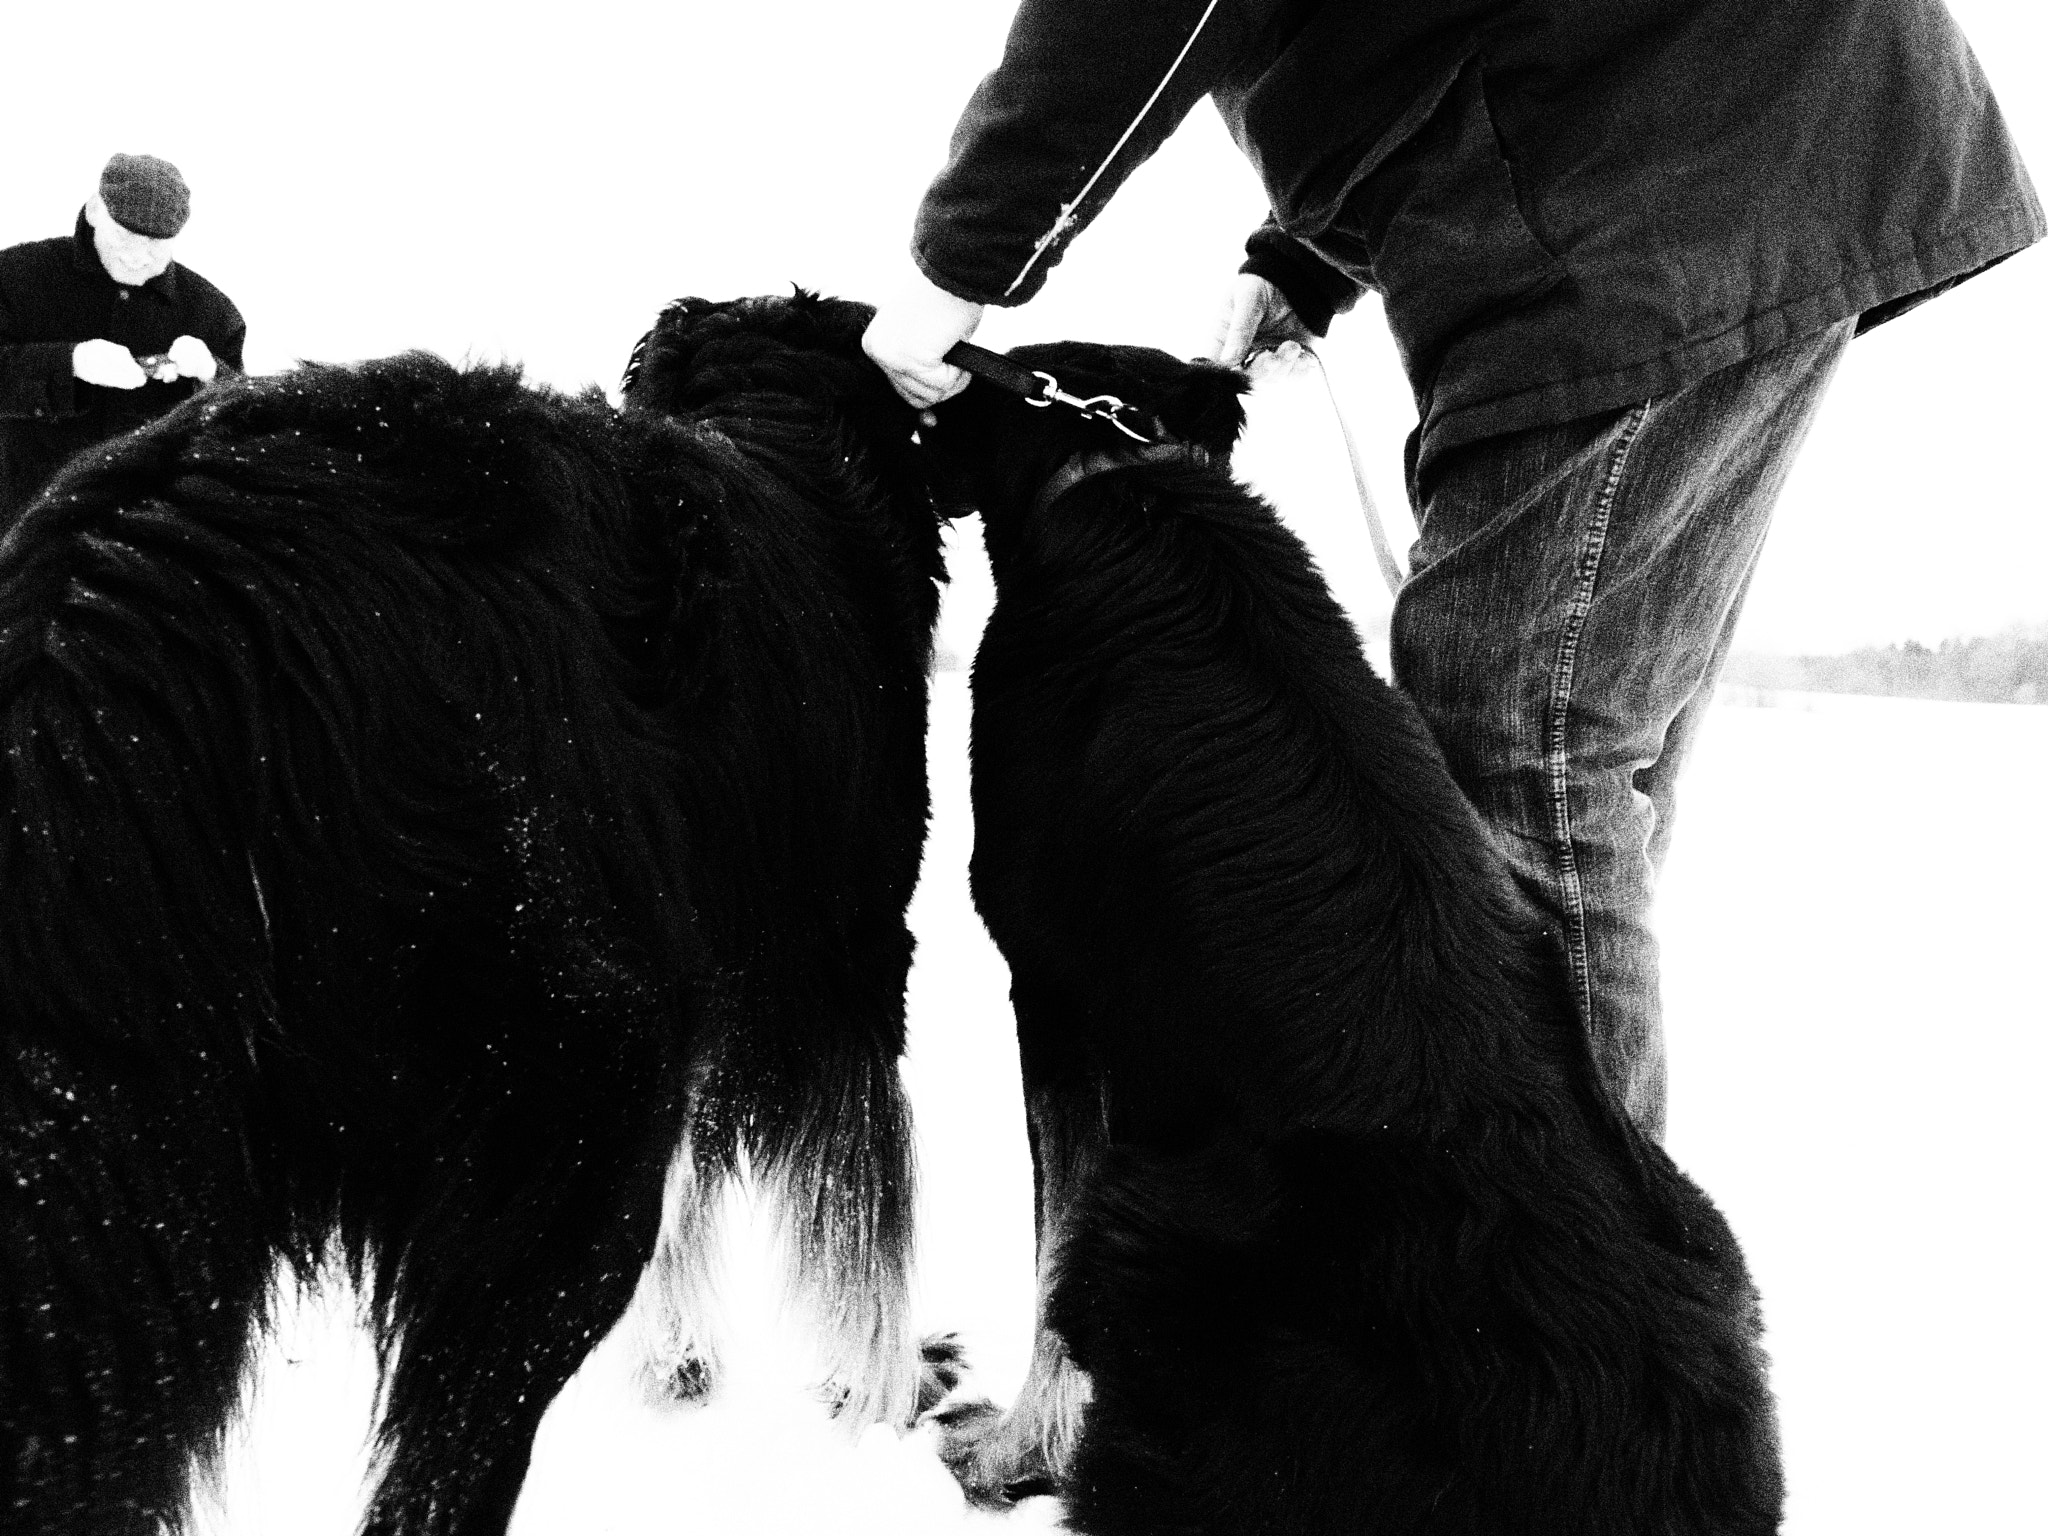 Photograph Dogs and men by Oliver Weigel on 500px